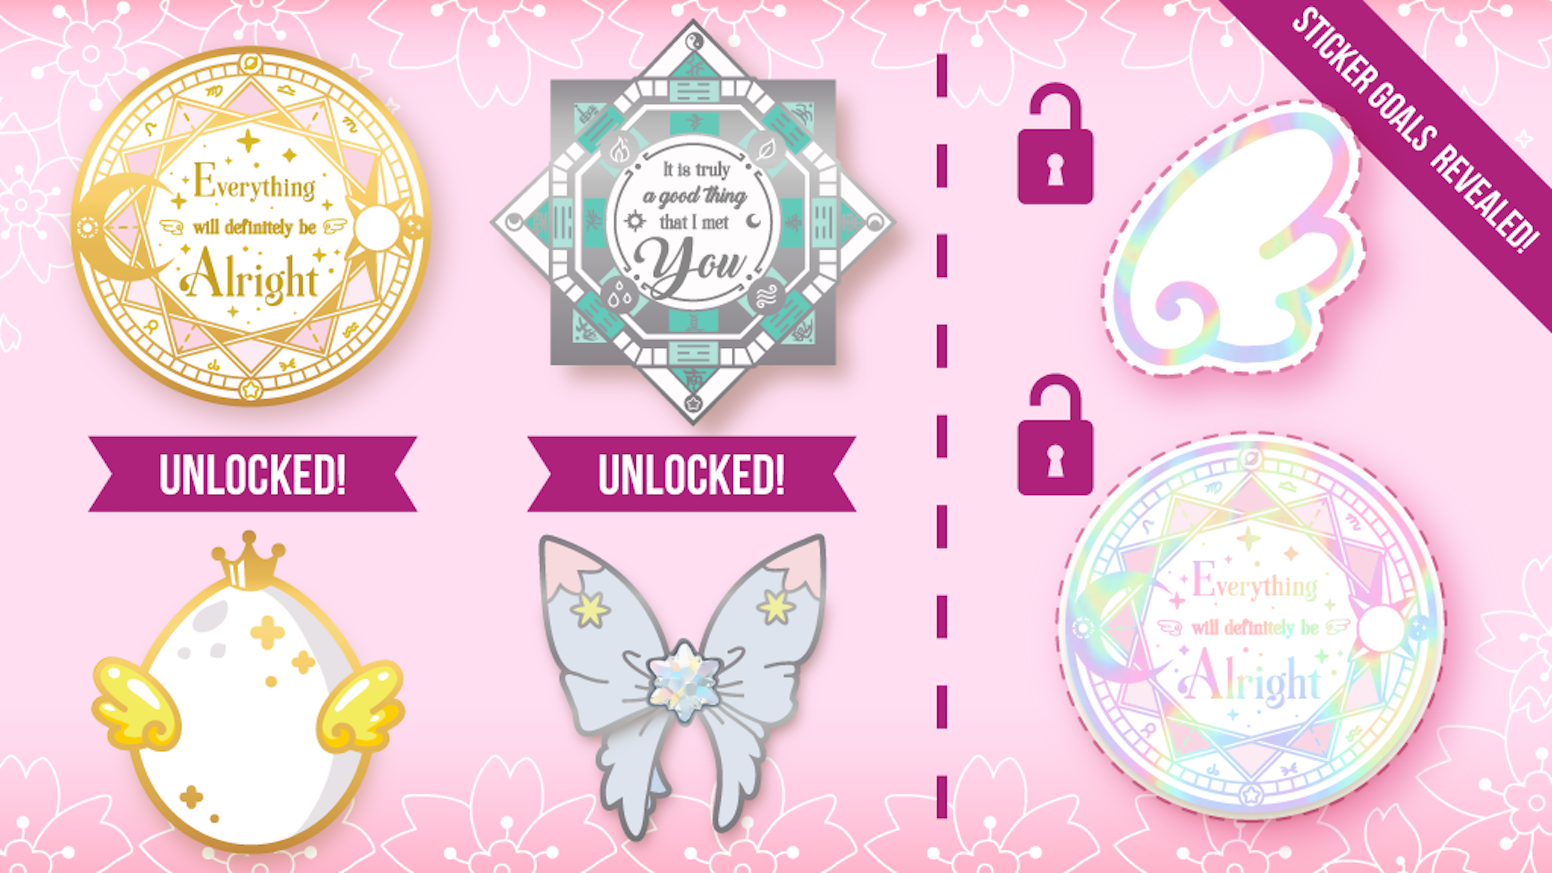 Invincible Spell Cardcaptor Sakura Magic Circle Enamel Pin